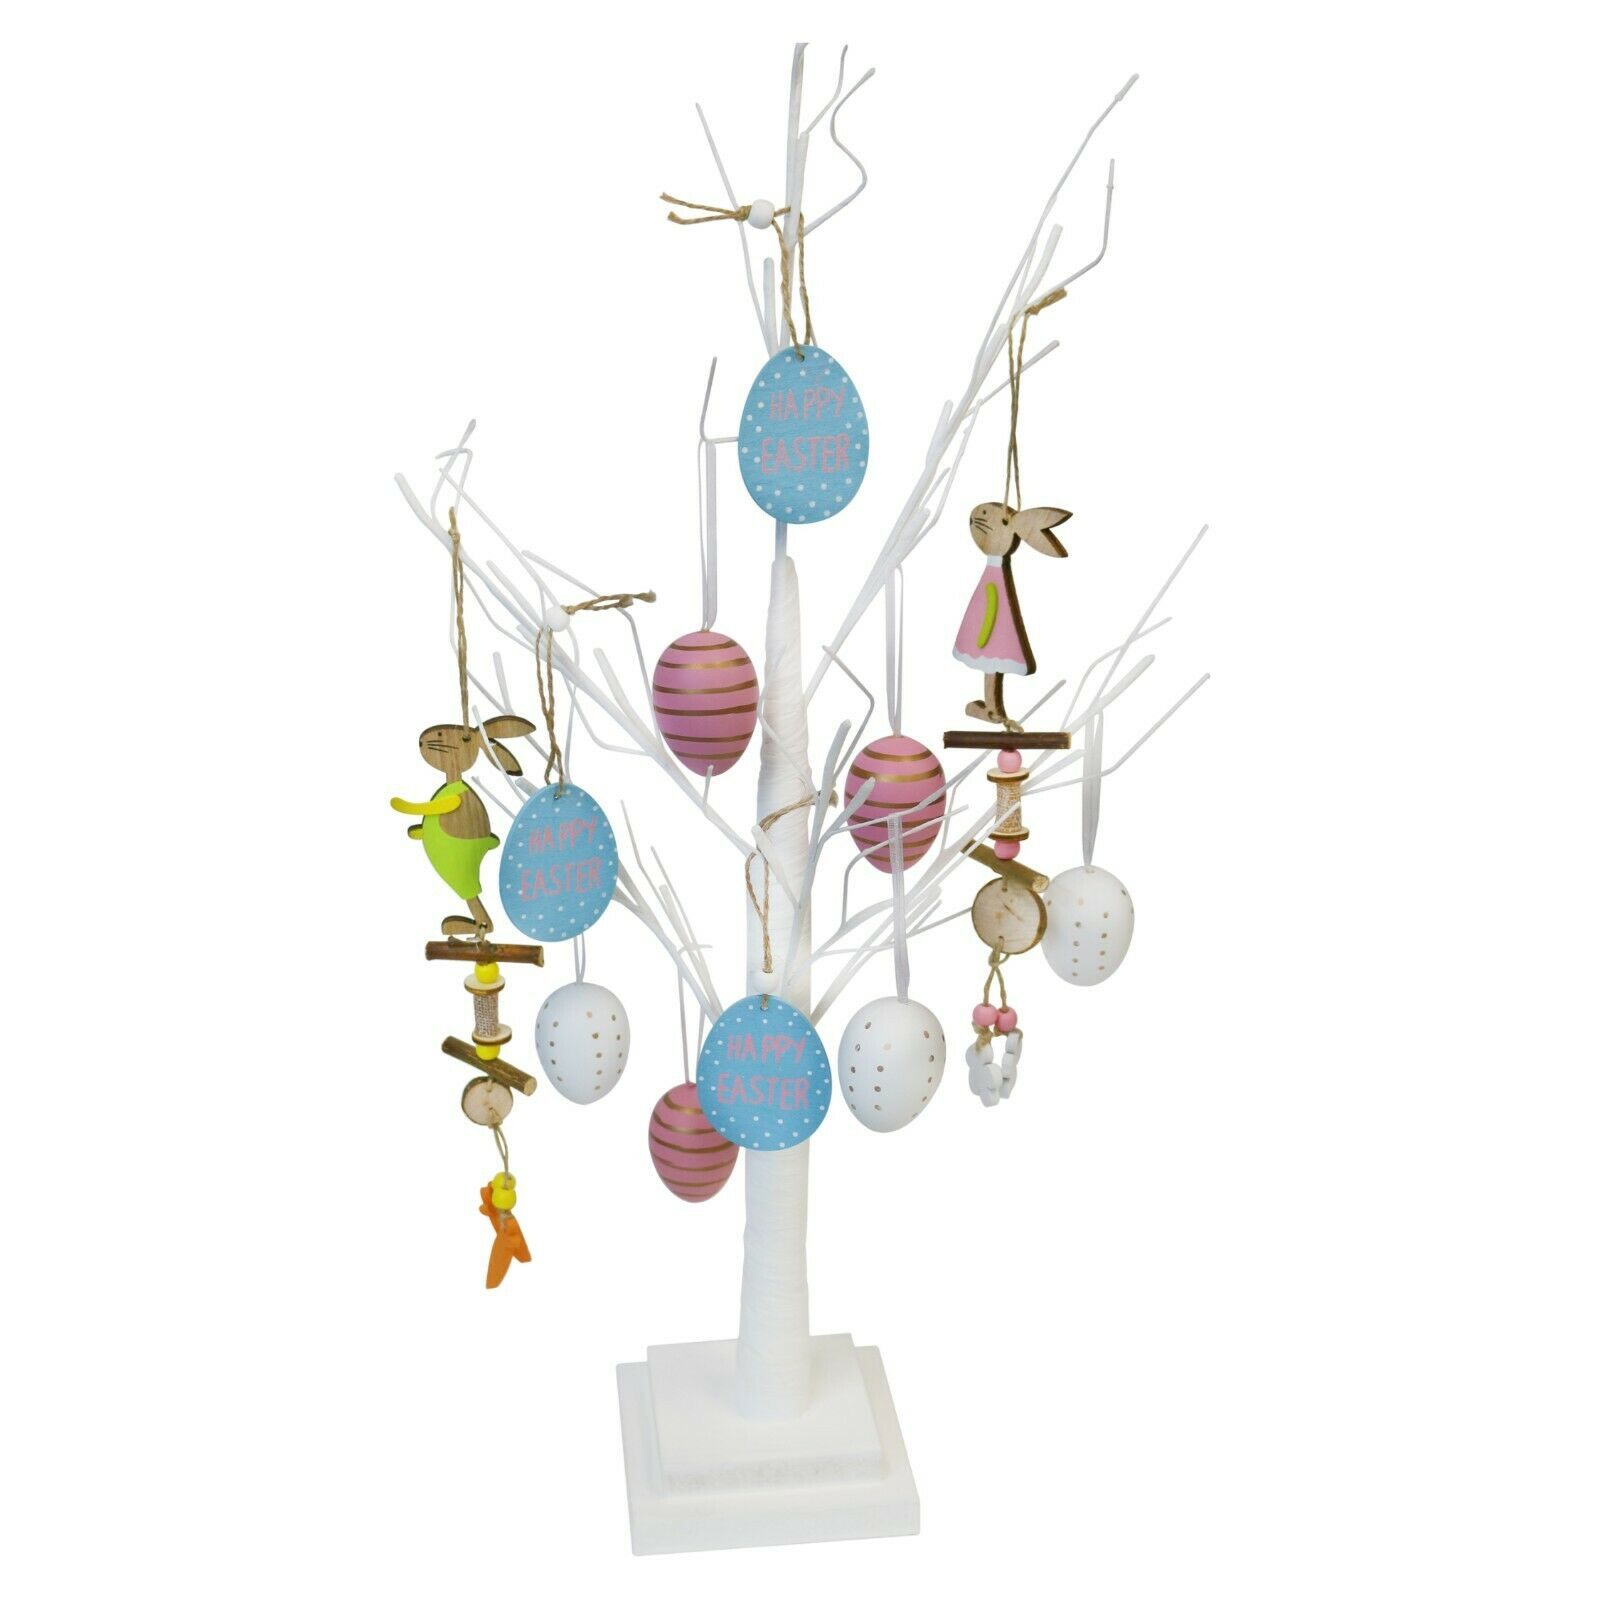 Details About Large White Tabletop Easter Tree Centrepiece With Hanging Egg Bunny Decorations